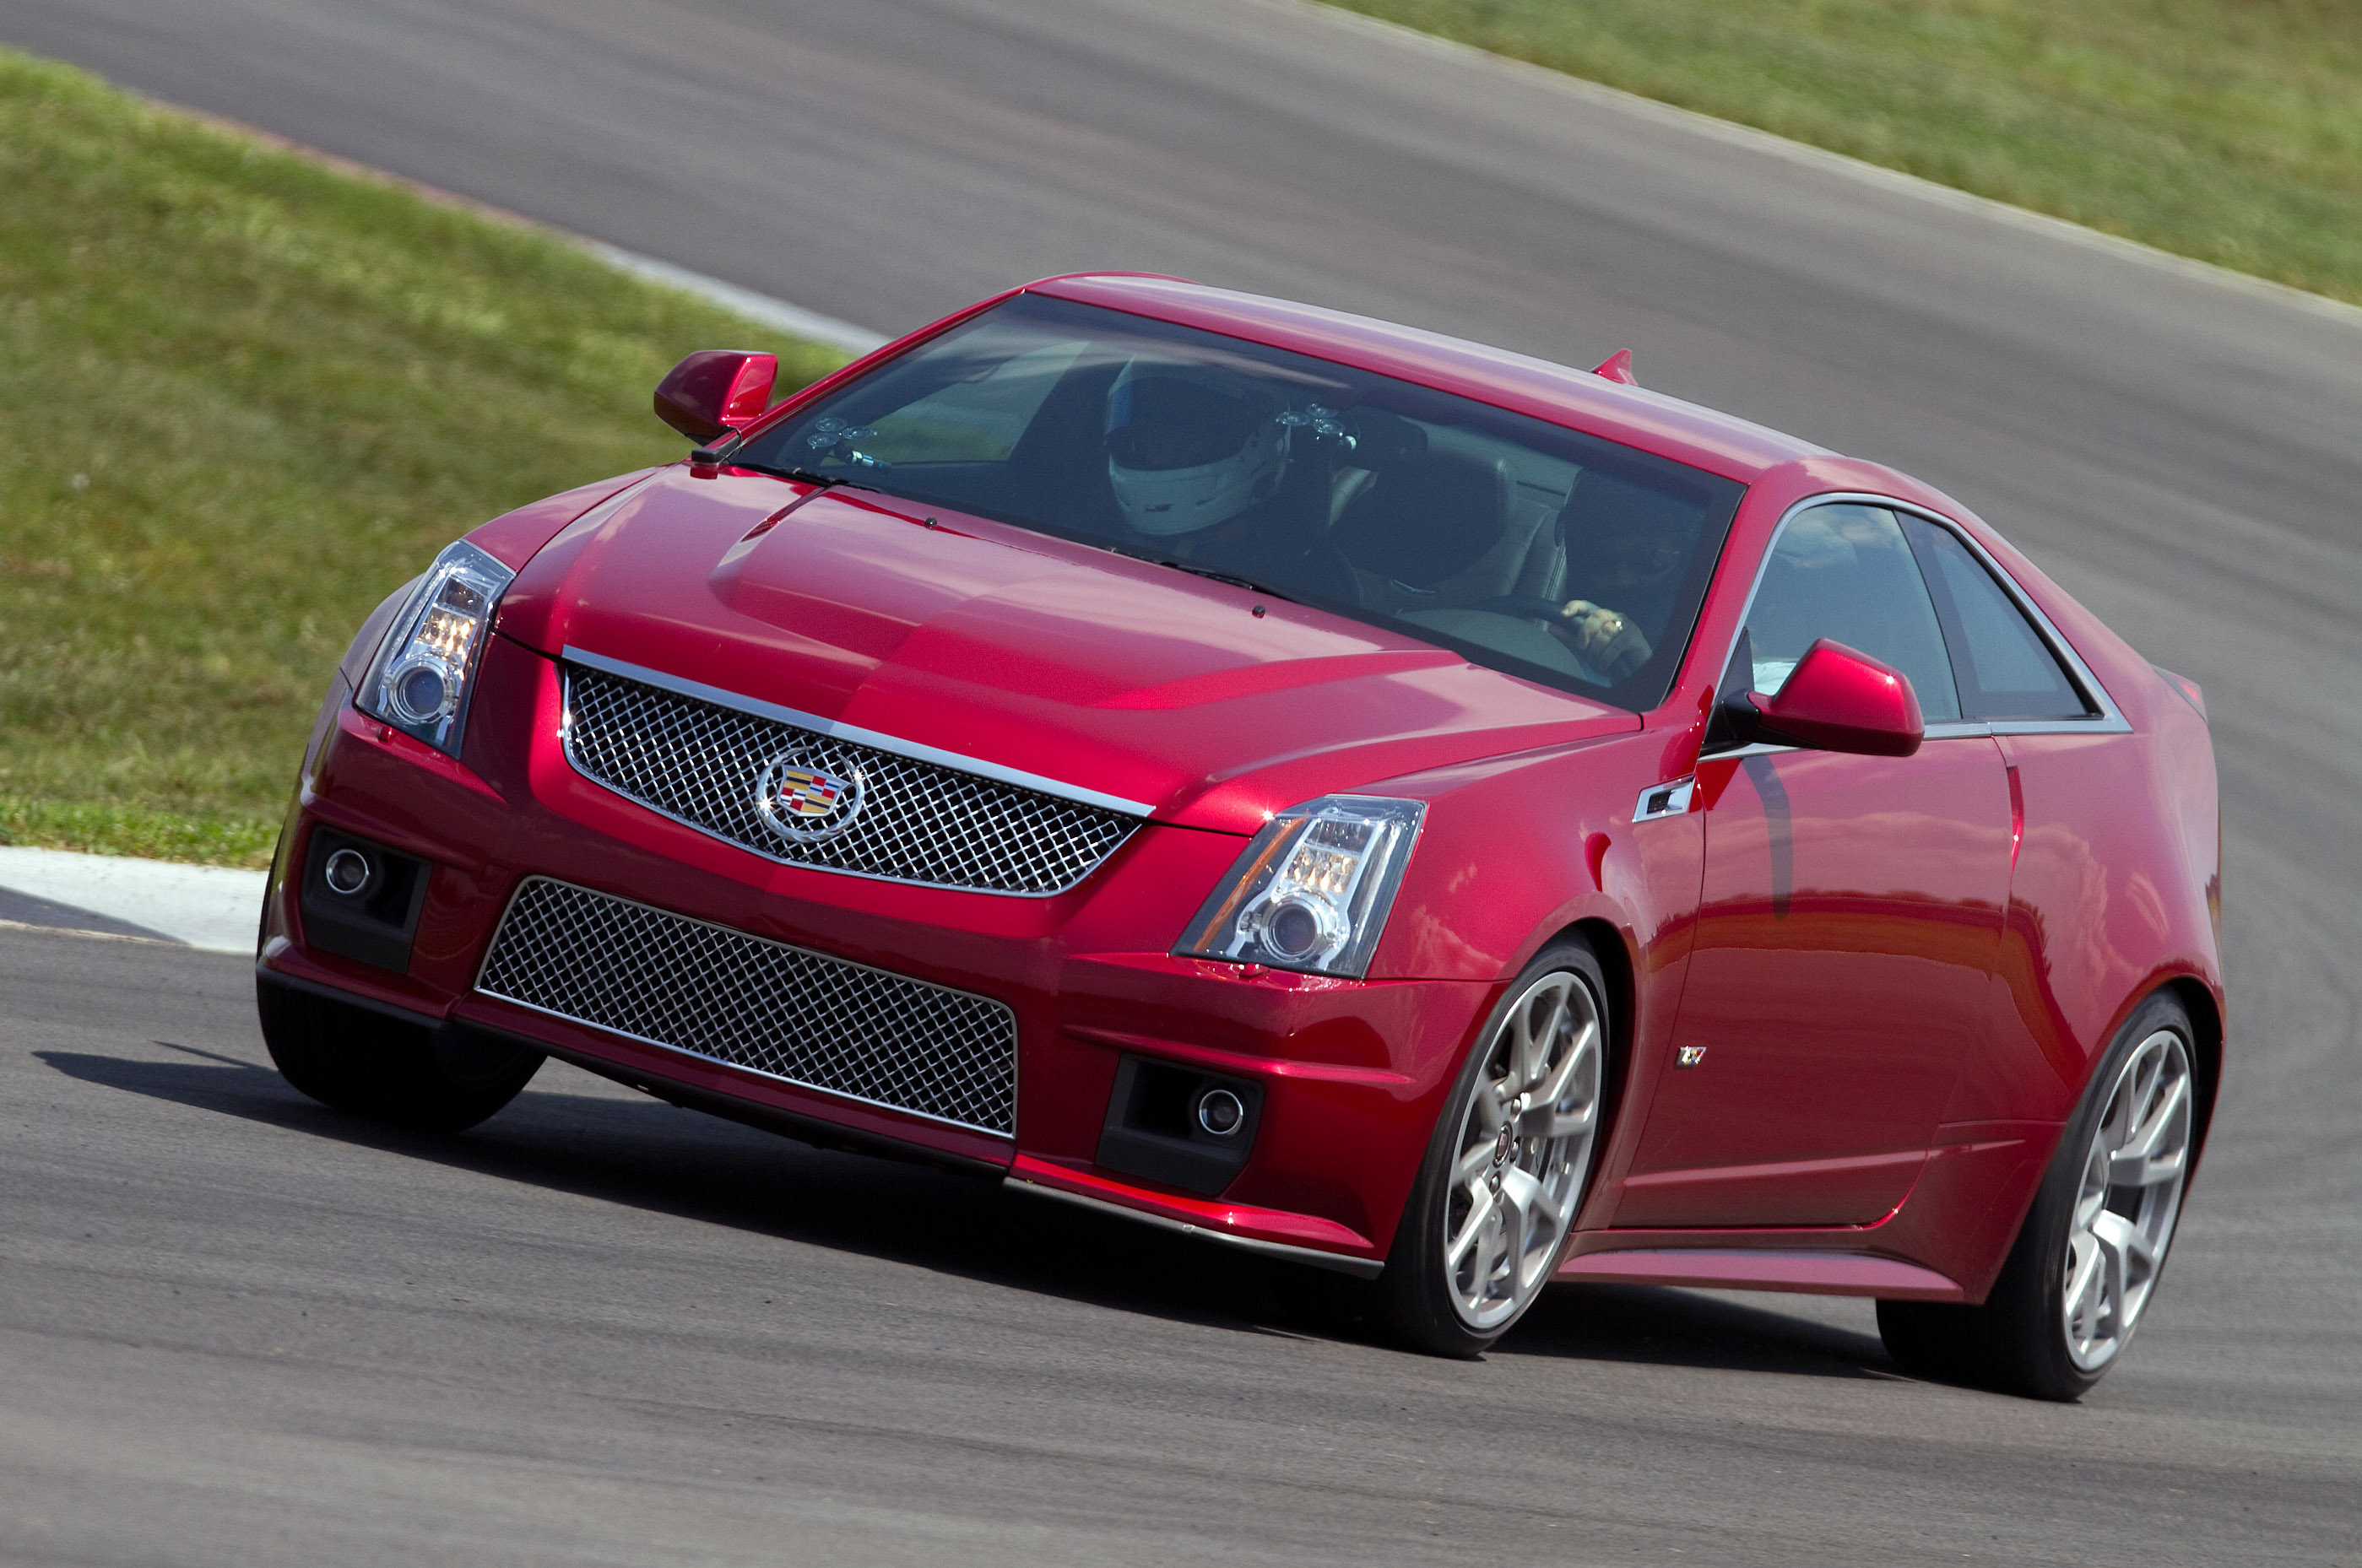 2010 cadillac cts v coupe rides magazine. Black Bedroom Furniture Sets. Home Design Ideas